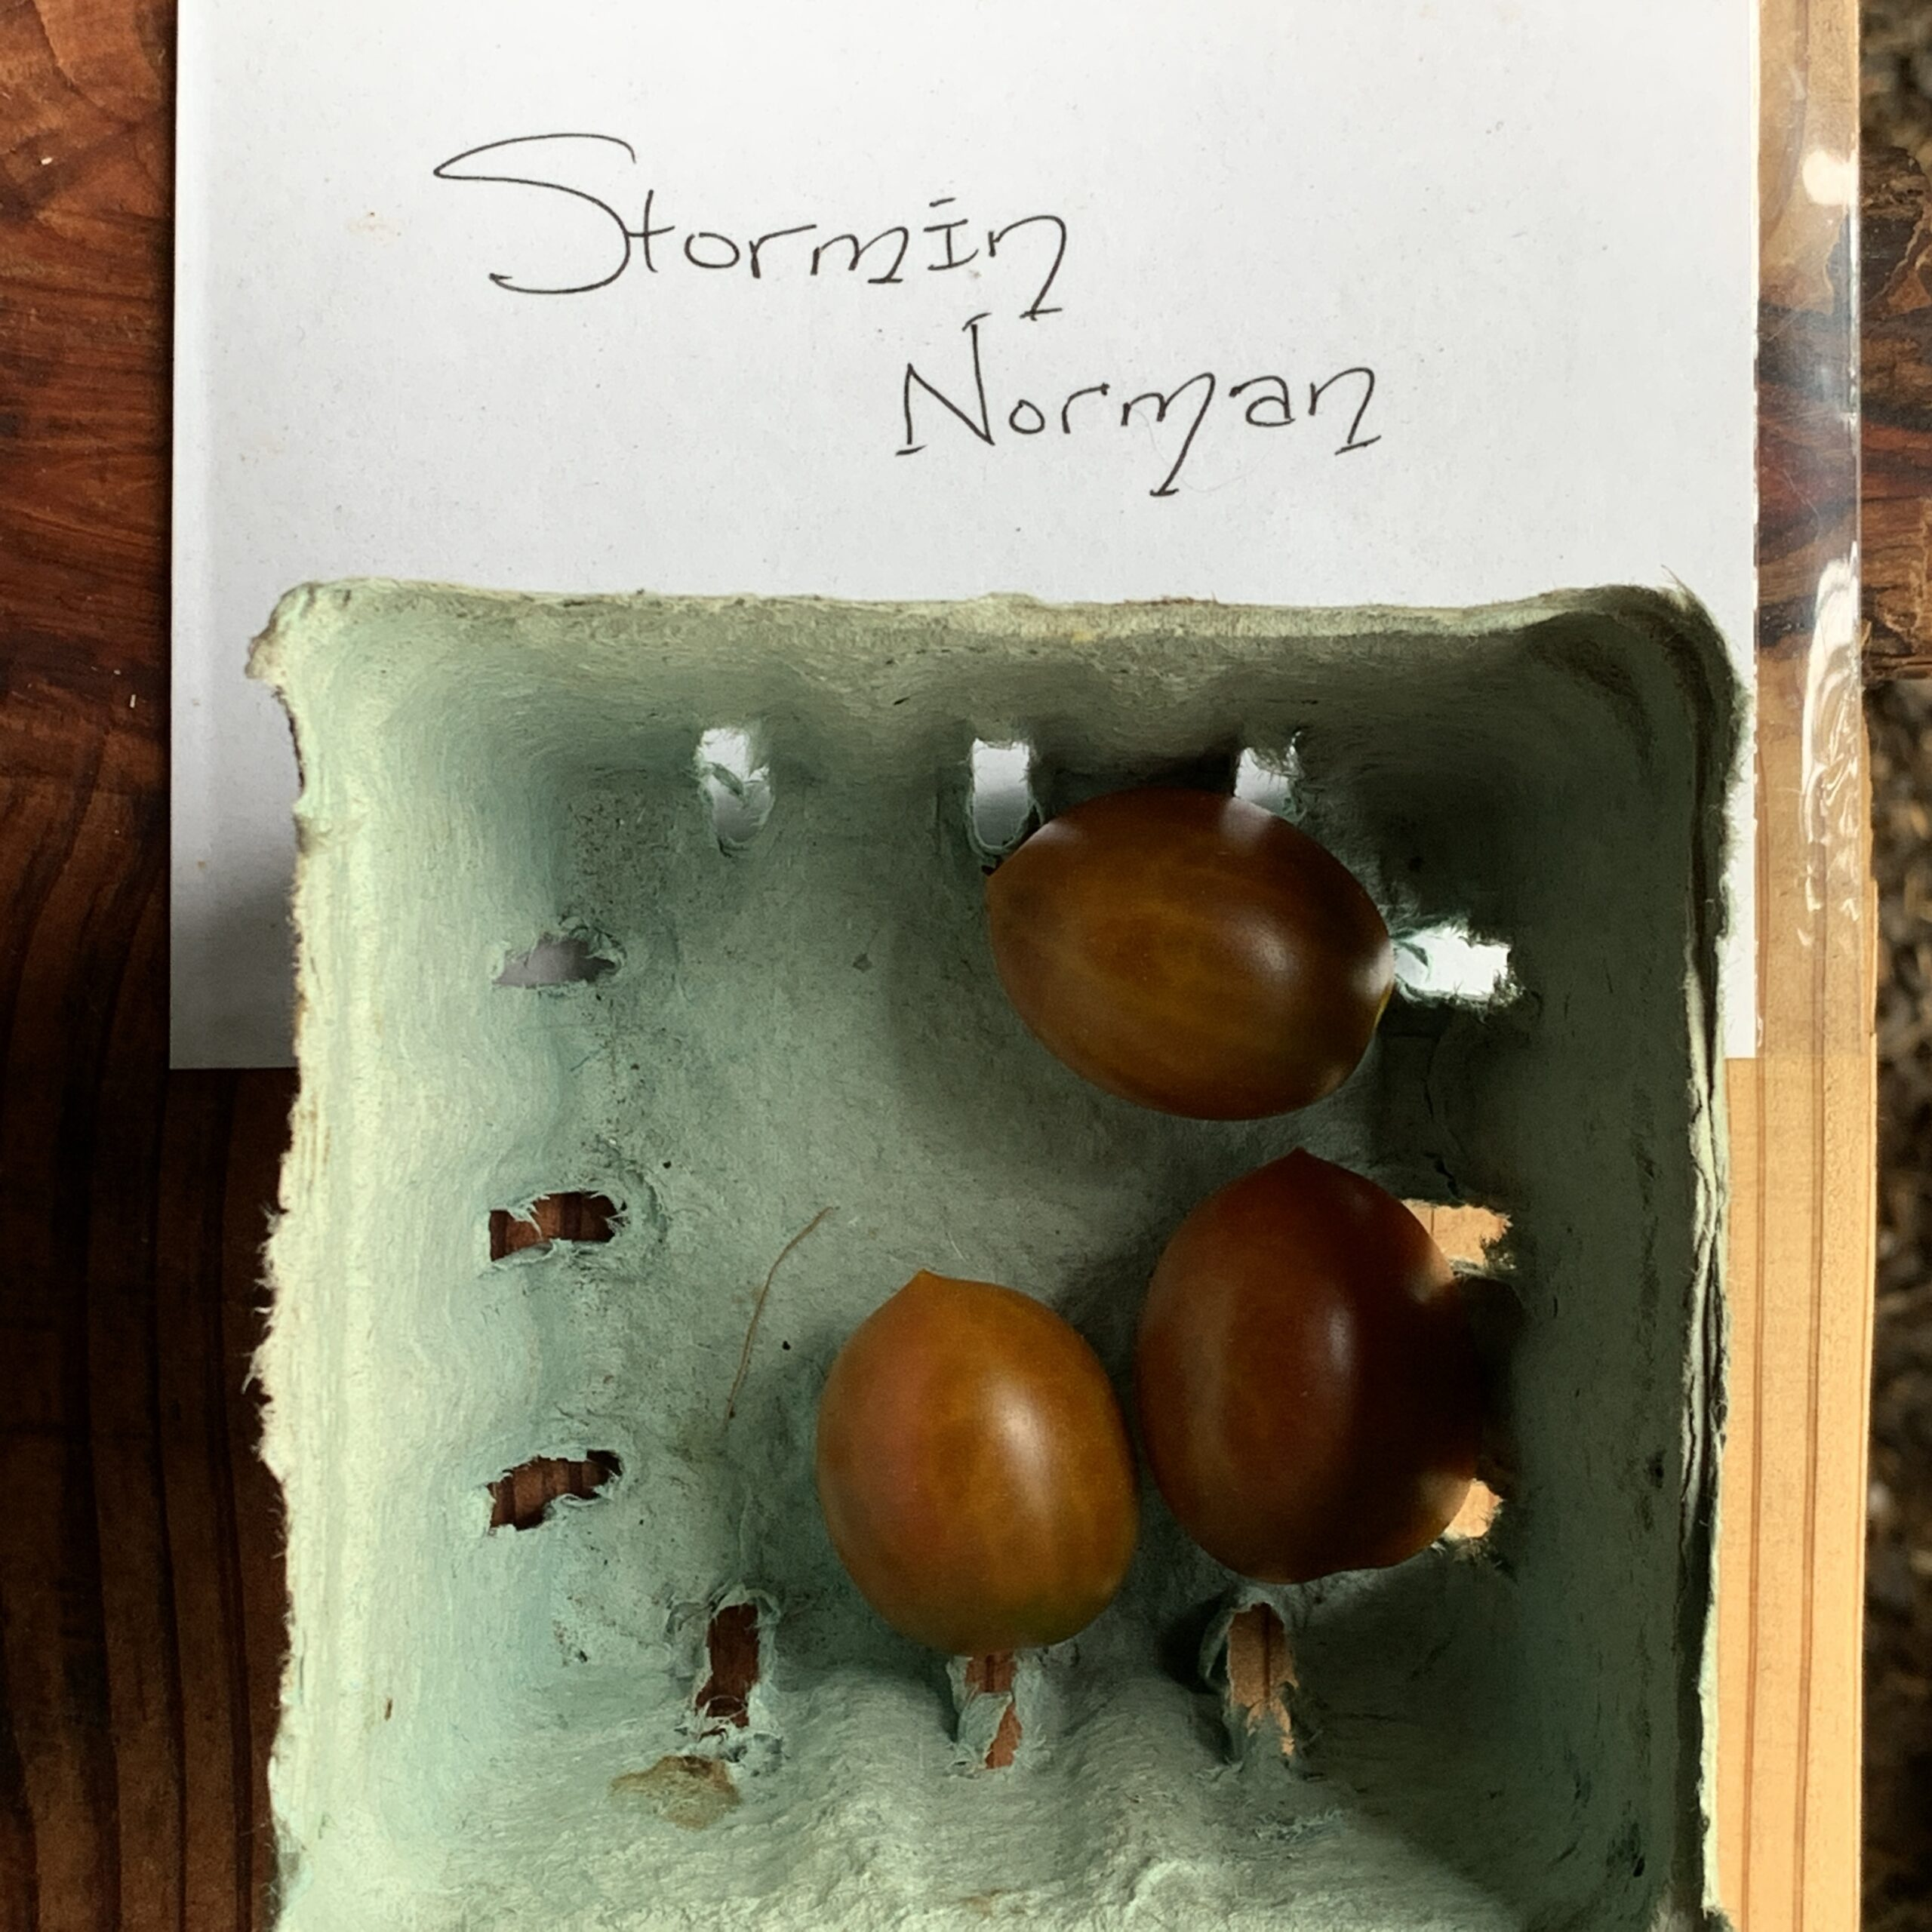 Image of Stormin' Norman tomatoes